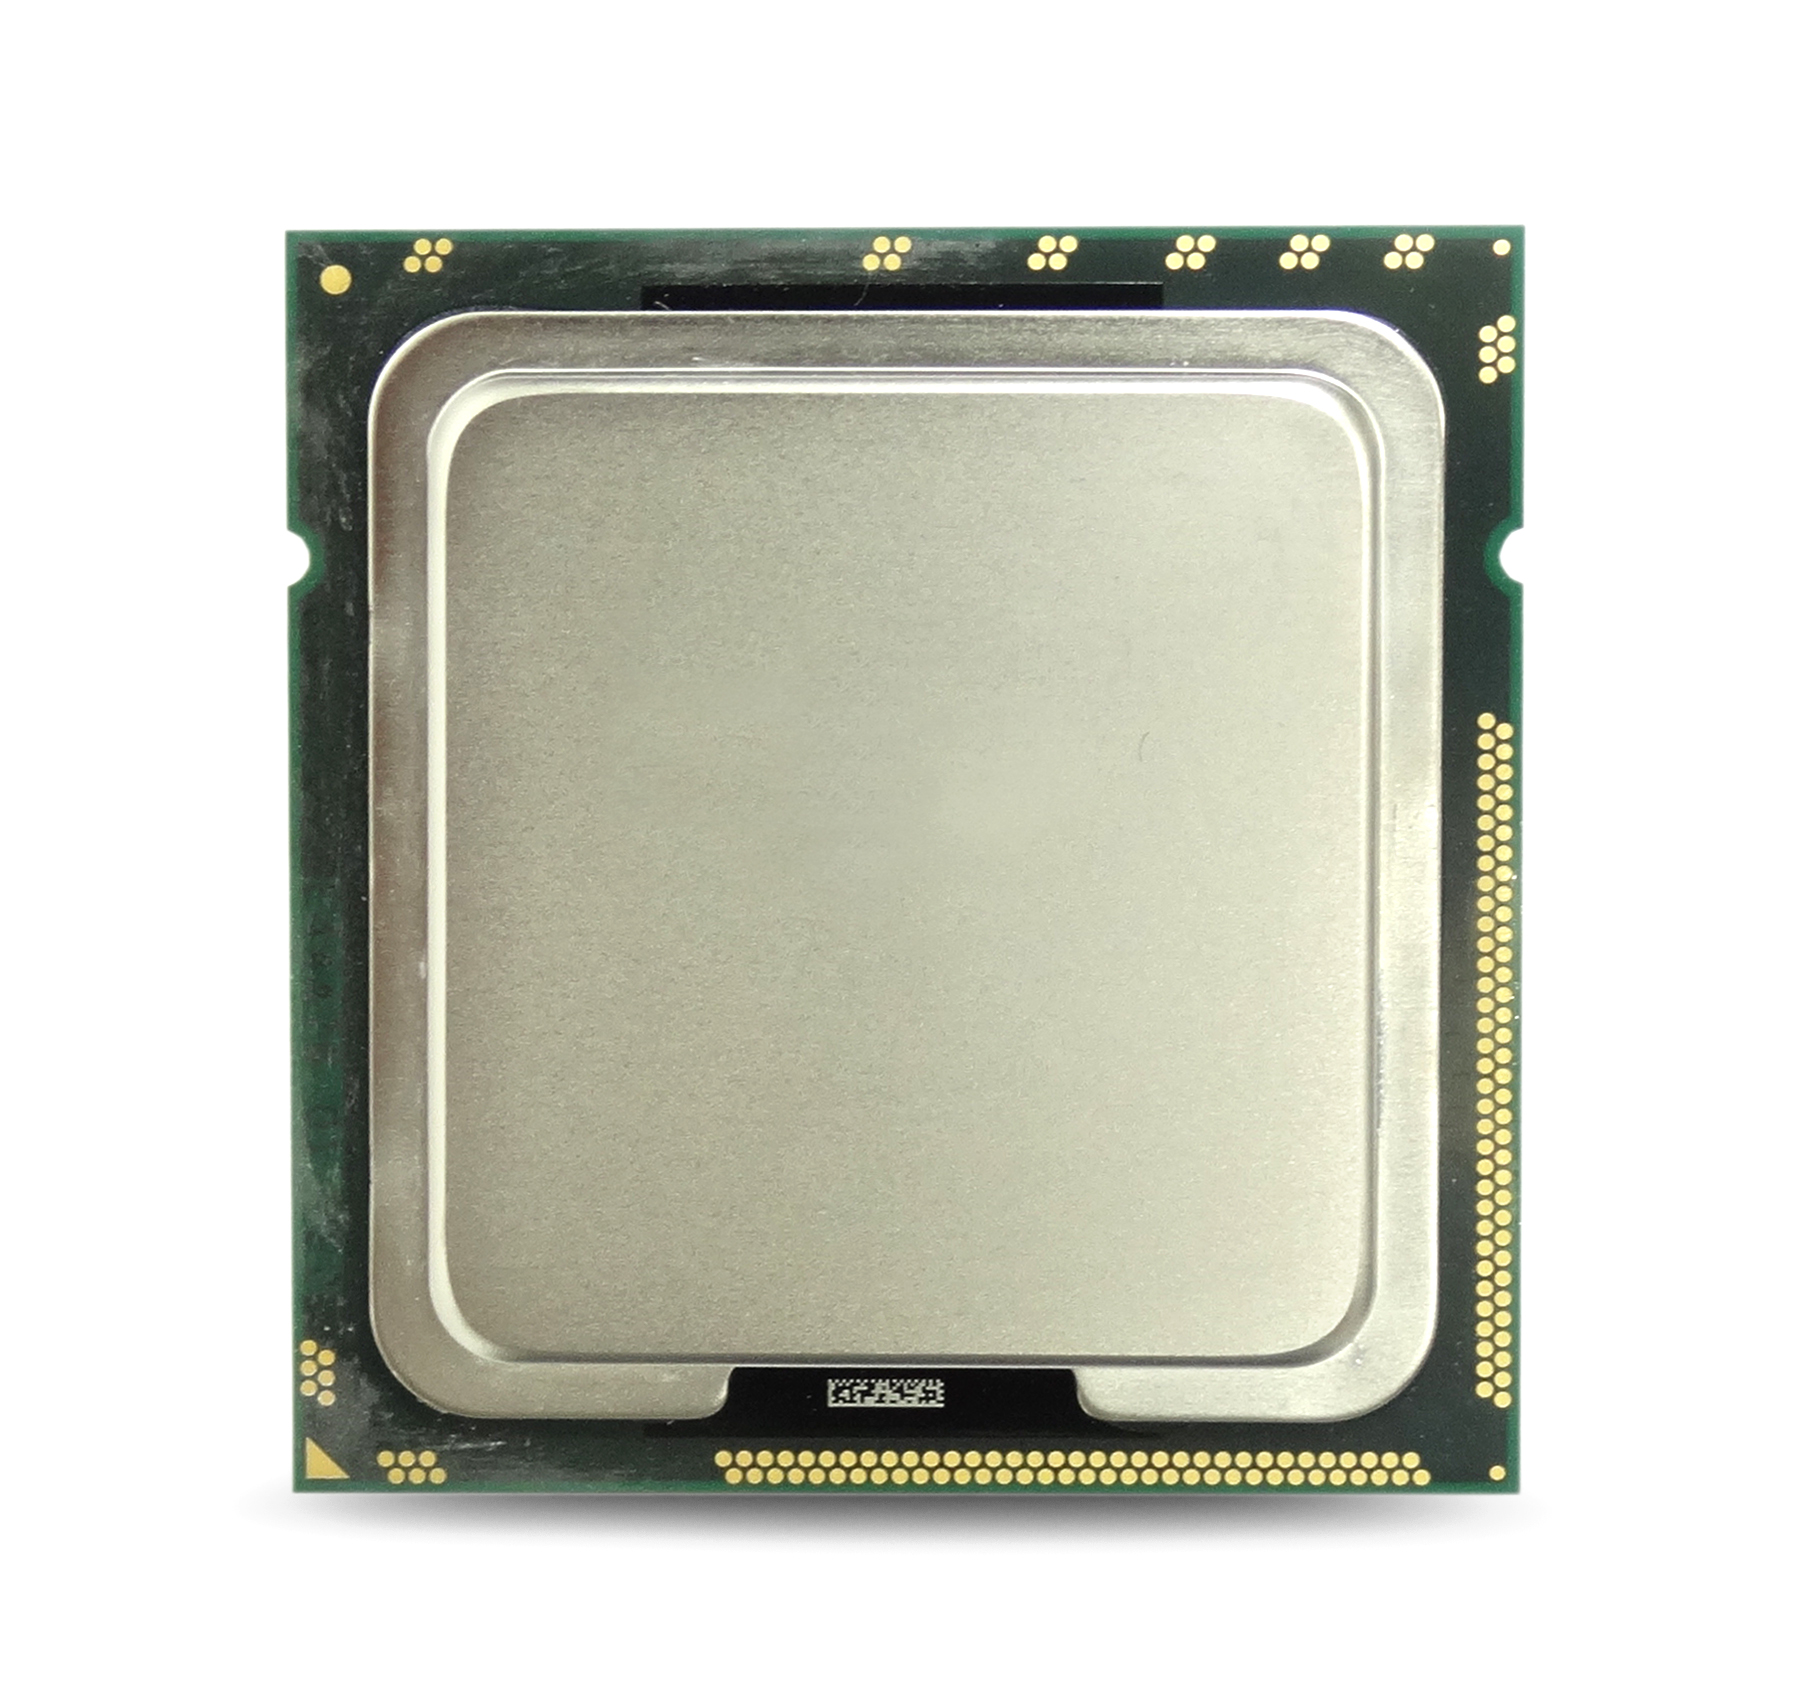 SLAPP Intel E8200 2.66GHz Core 2 Duo 6MB Cache Processor (SLAPP)